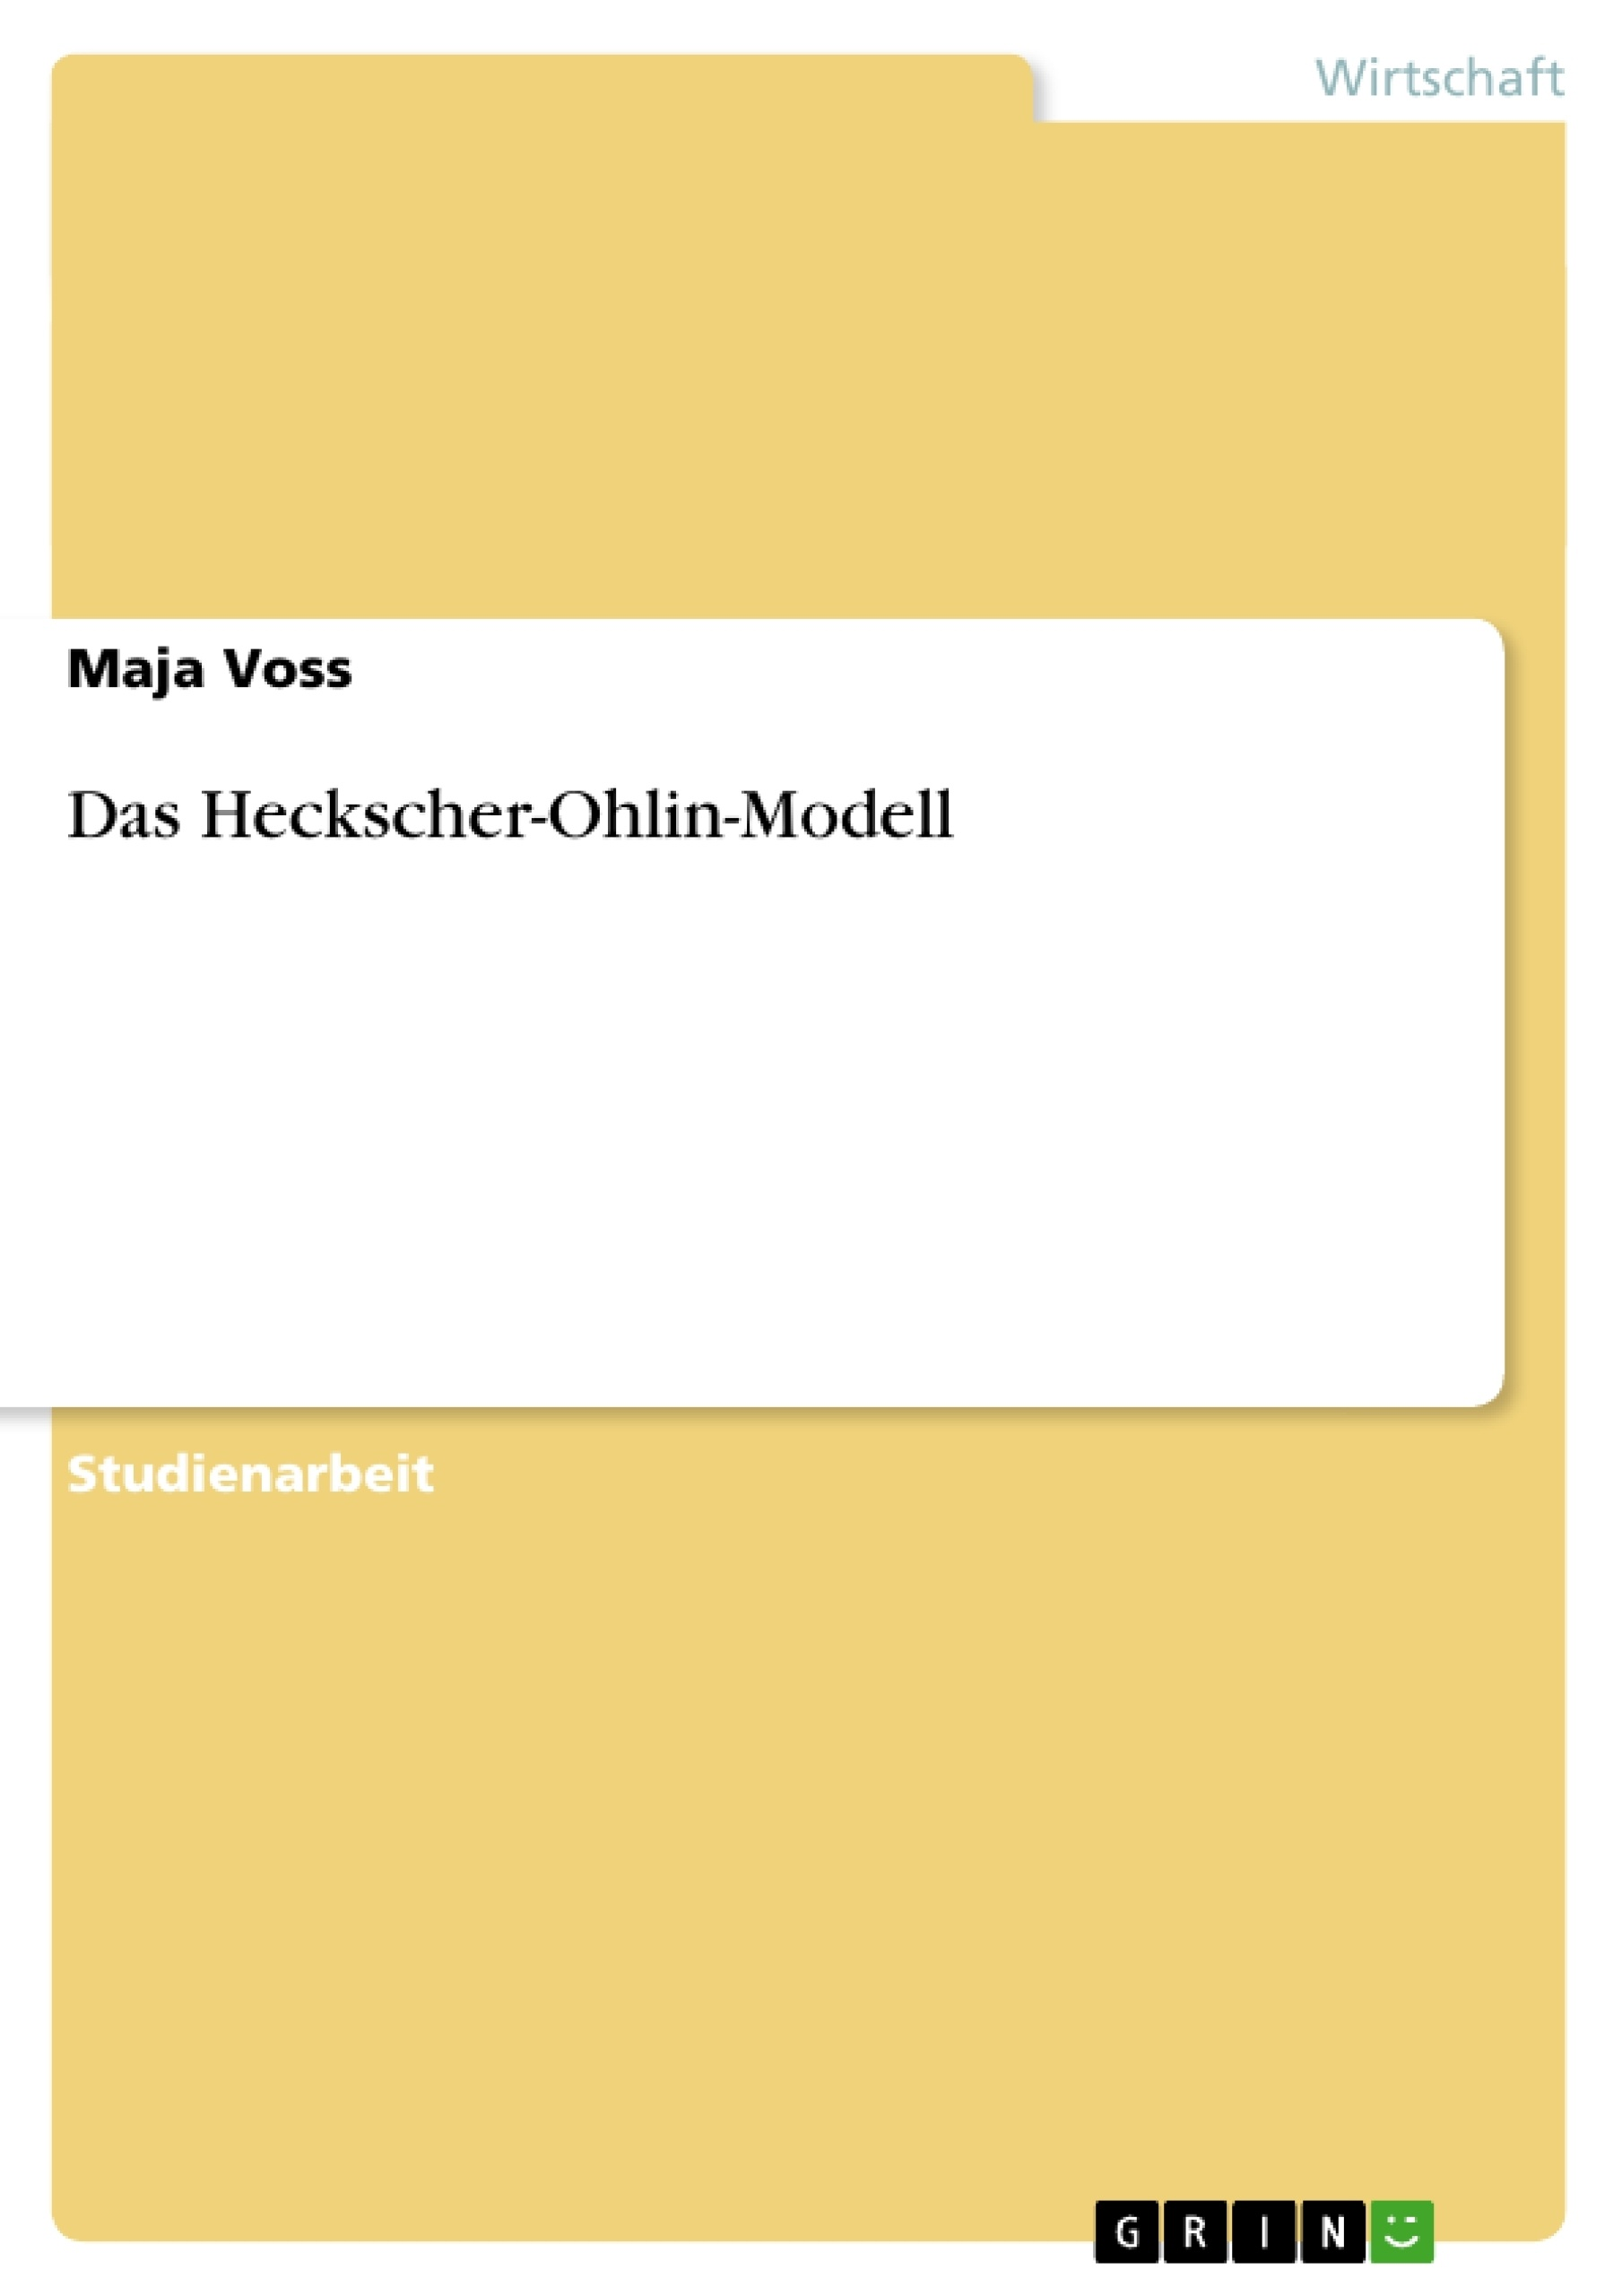 heckscher ohlin thesis Free essay: introduction two swedish economists eli heckscher (1919) and bertil ohlin (1933) laid the substantial developments on david ricardo's theory of.